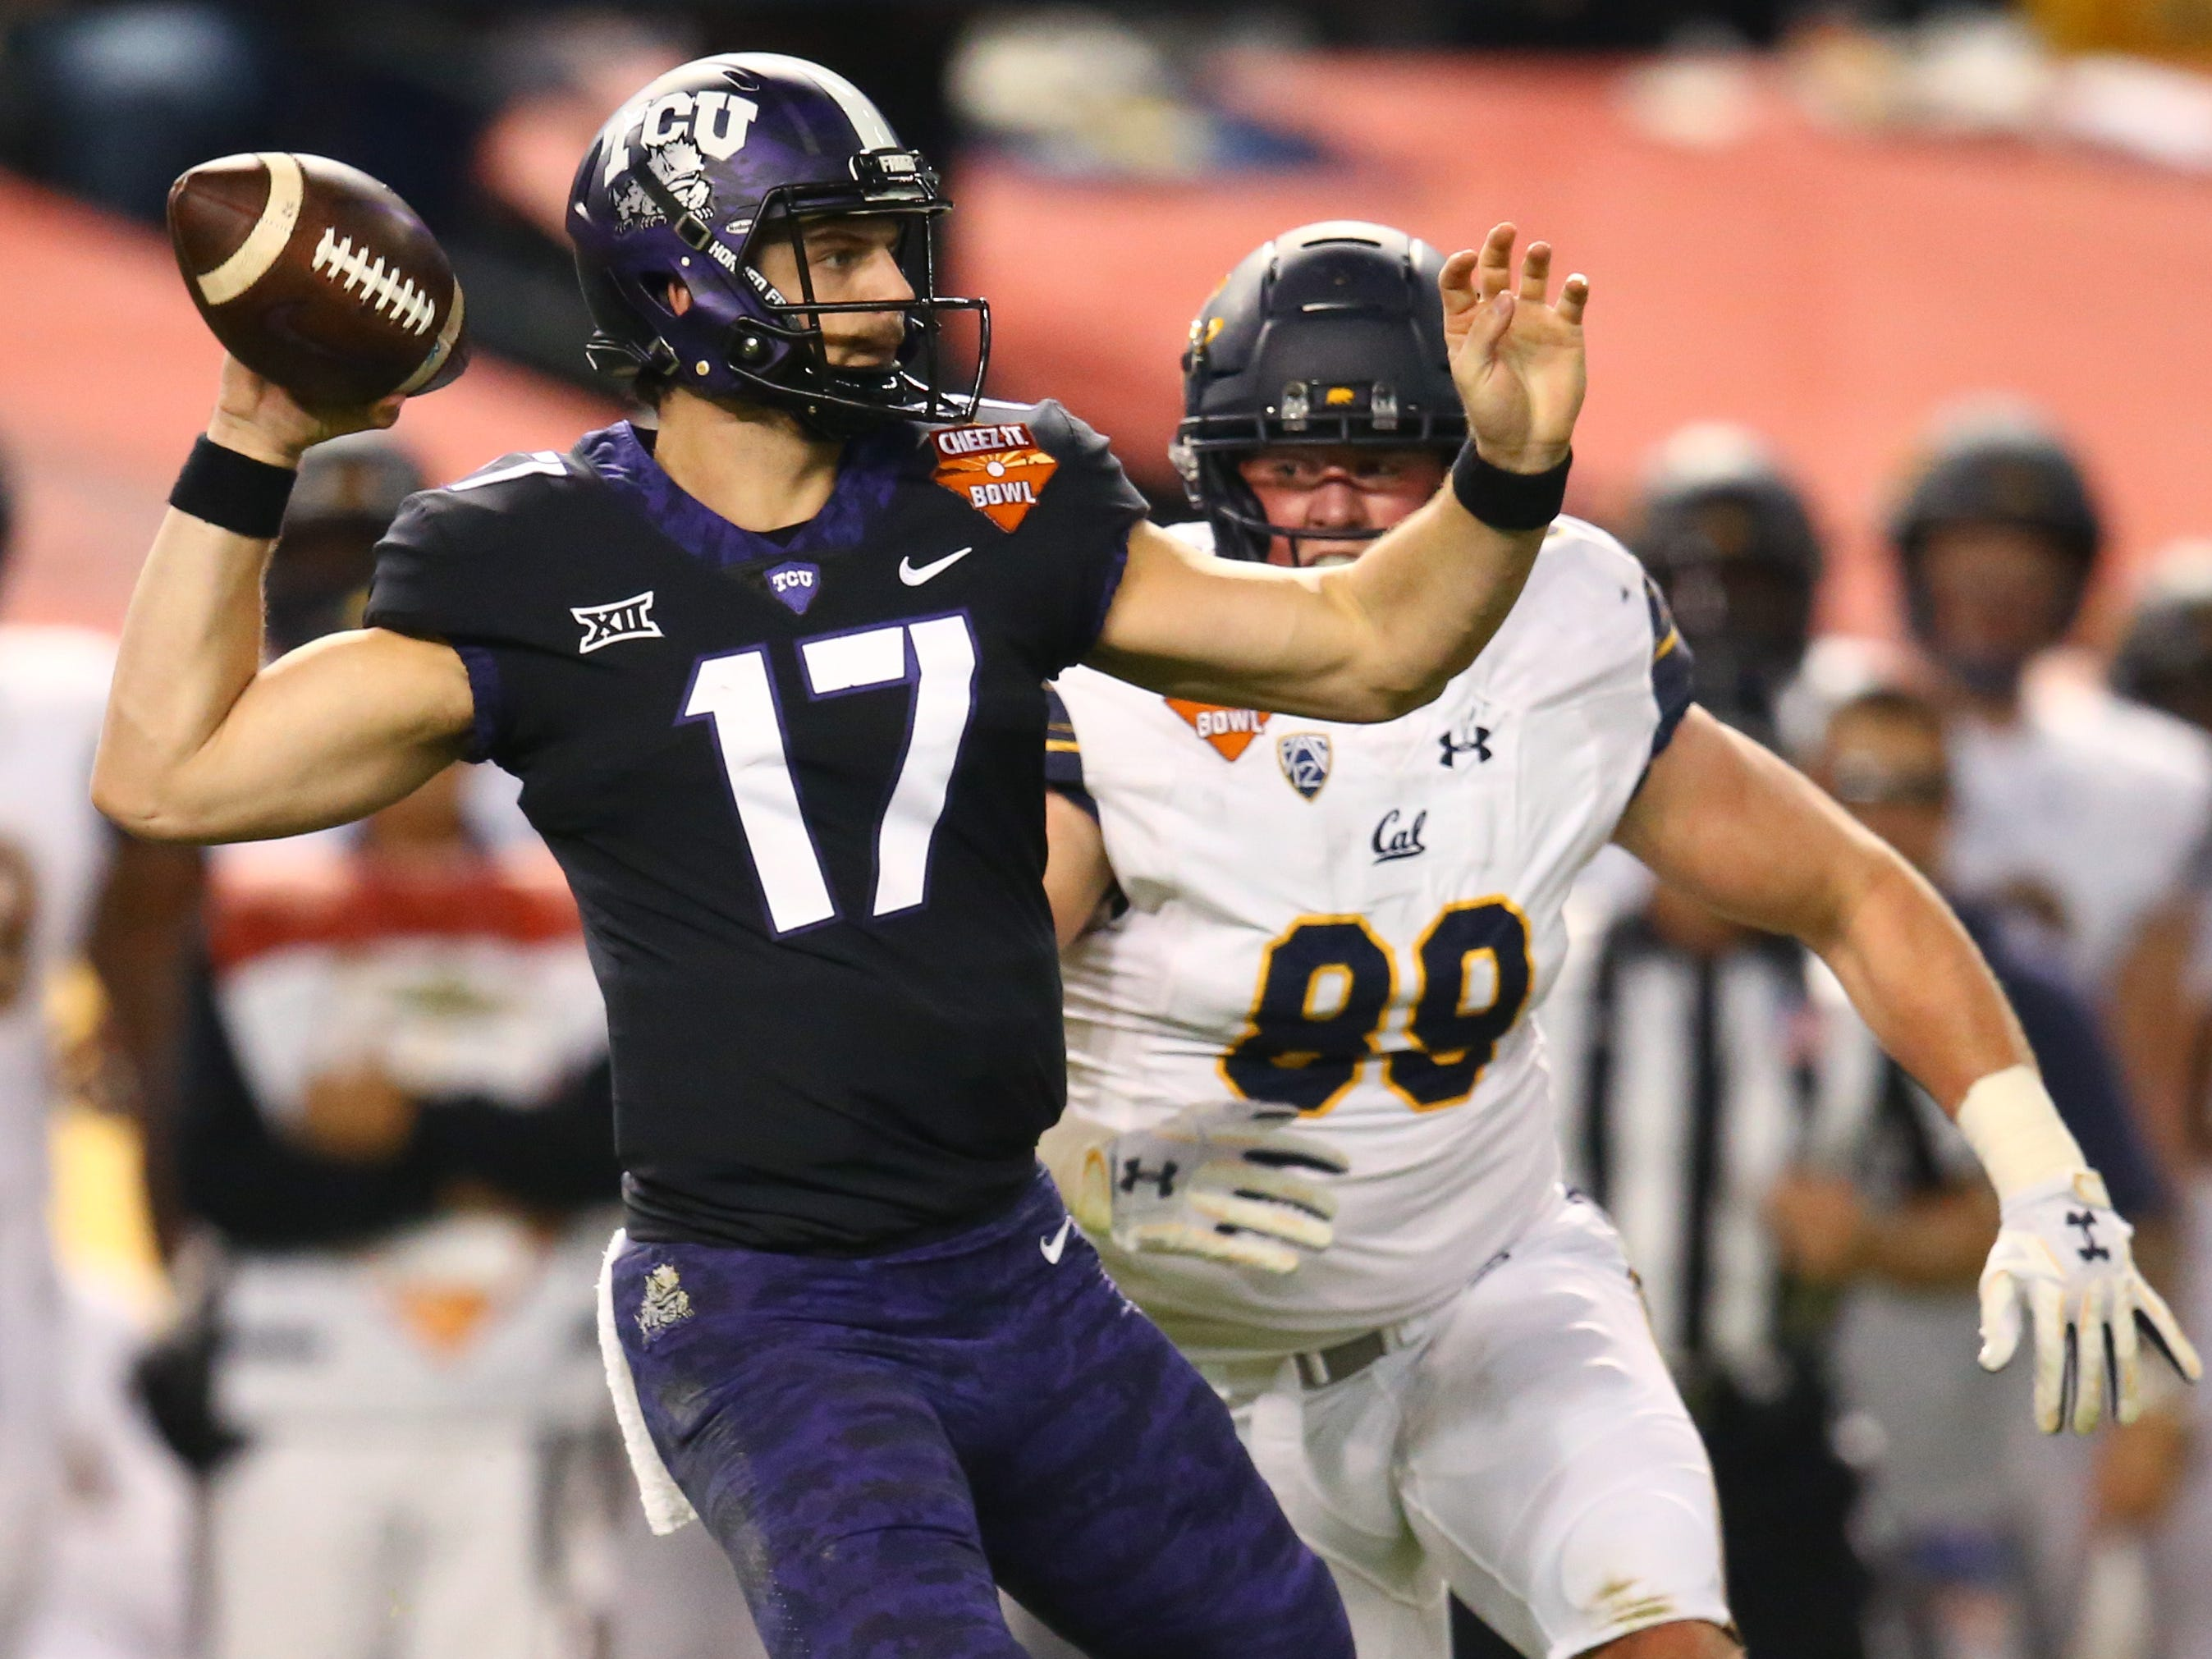 Dec 26, 2018; Phoenix, AZ, USA; Texas Christian Horned Frogs quarterback Grayson Muehlstein (17) throws a pass against the California Golden Bears in the first half of the 2018 Cheez-It Bowl at Chase Field.